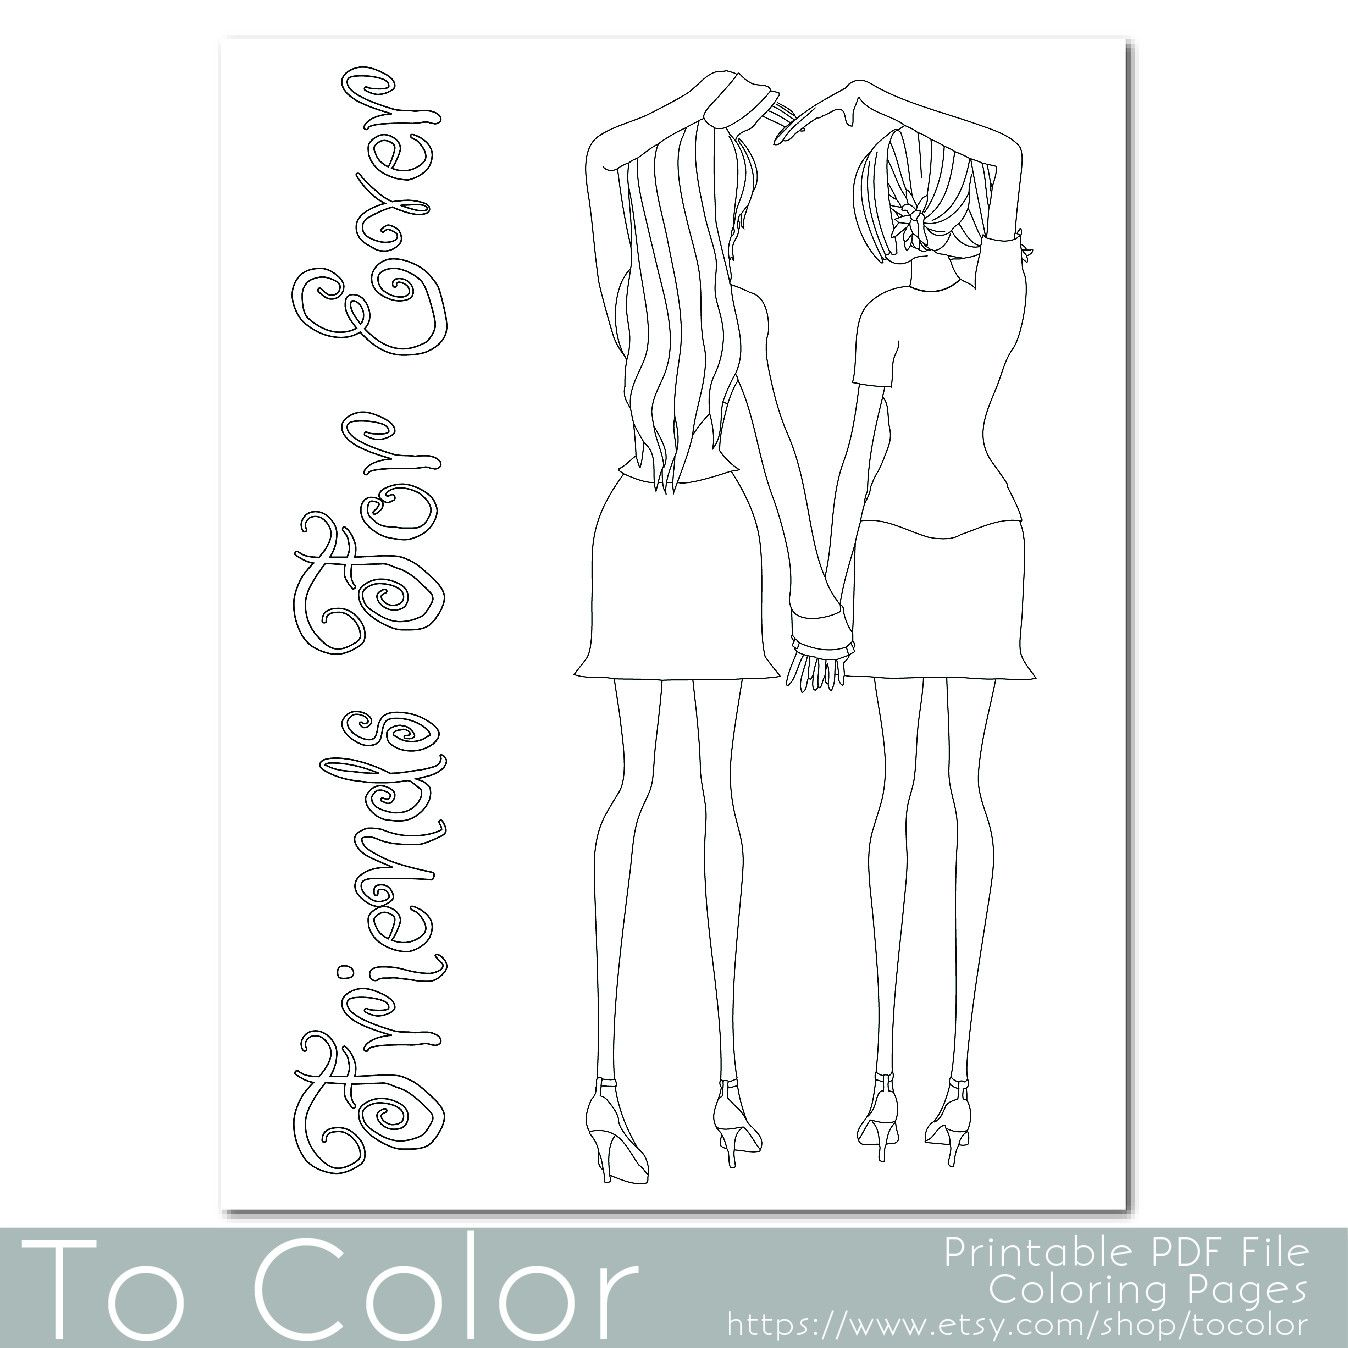 friends holding hands coloring pages - photo#7